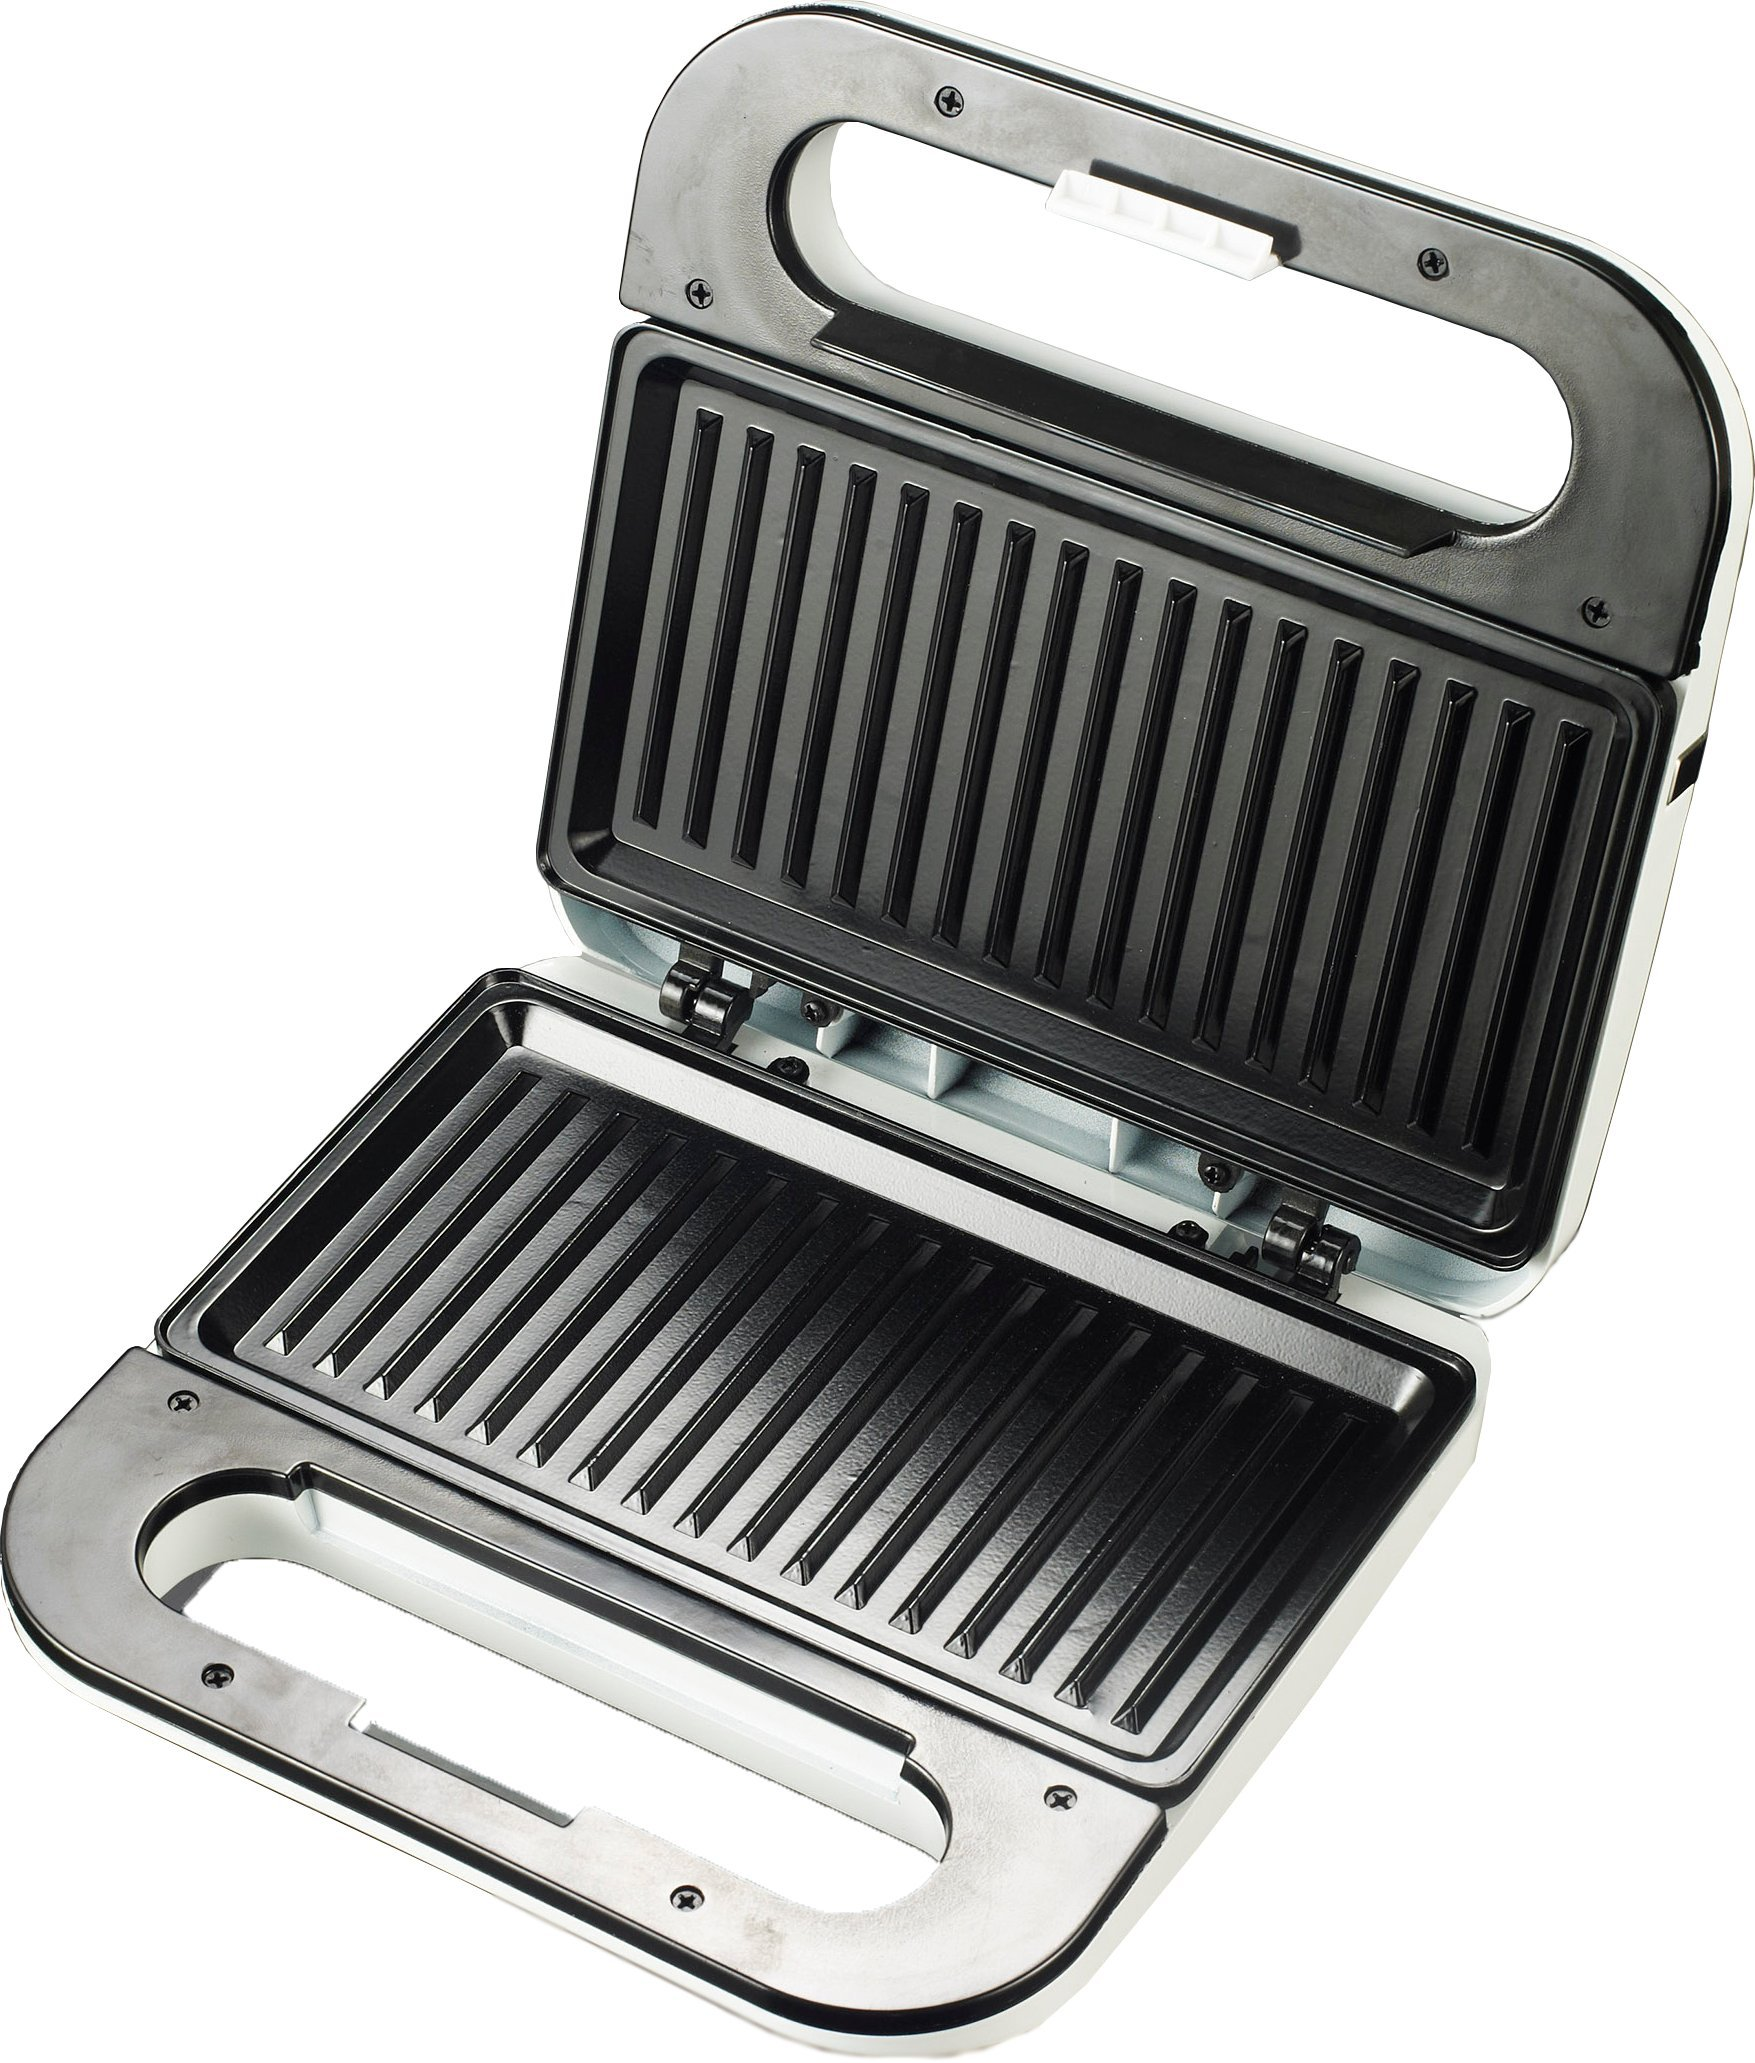 Granite Premium 2-Serving Classic Indoor Contact Grill | Non-stick